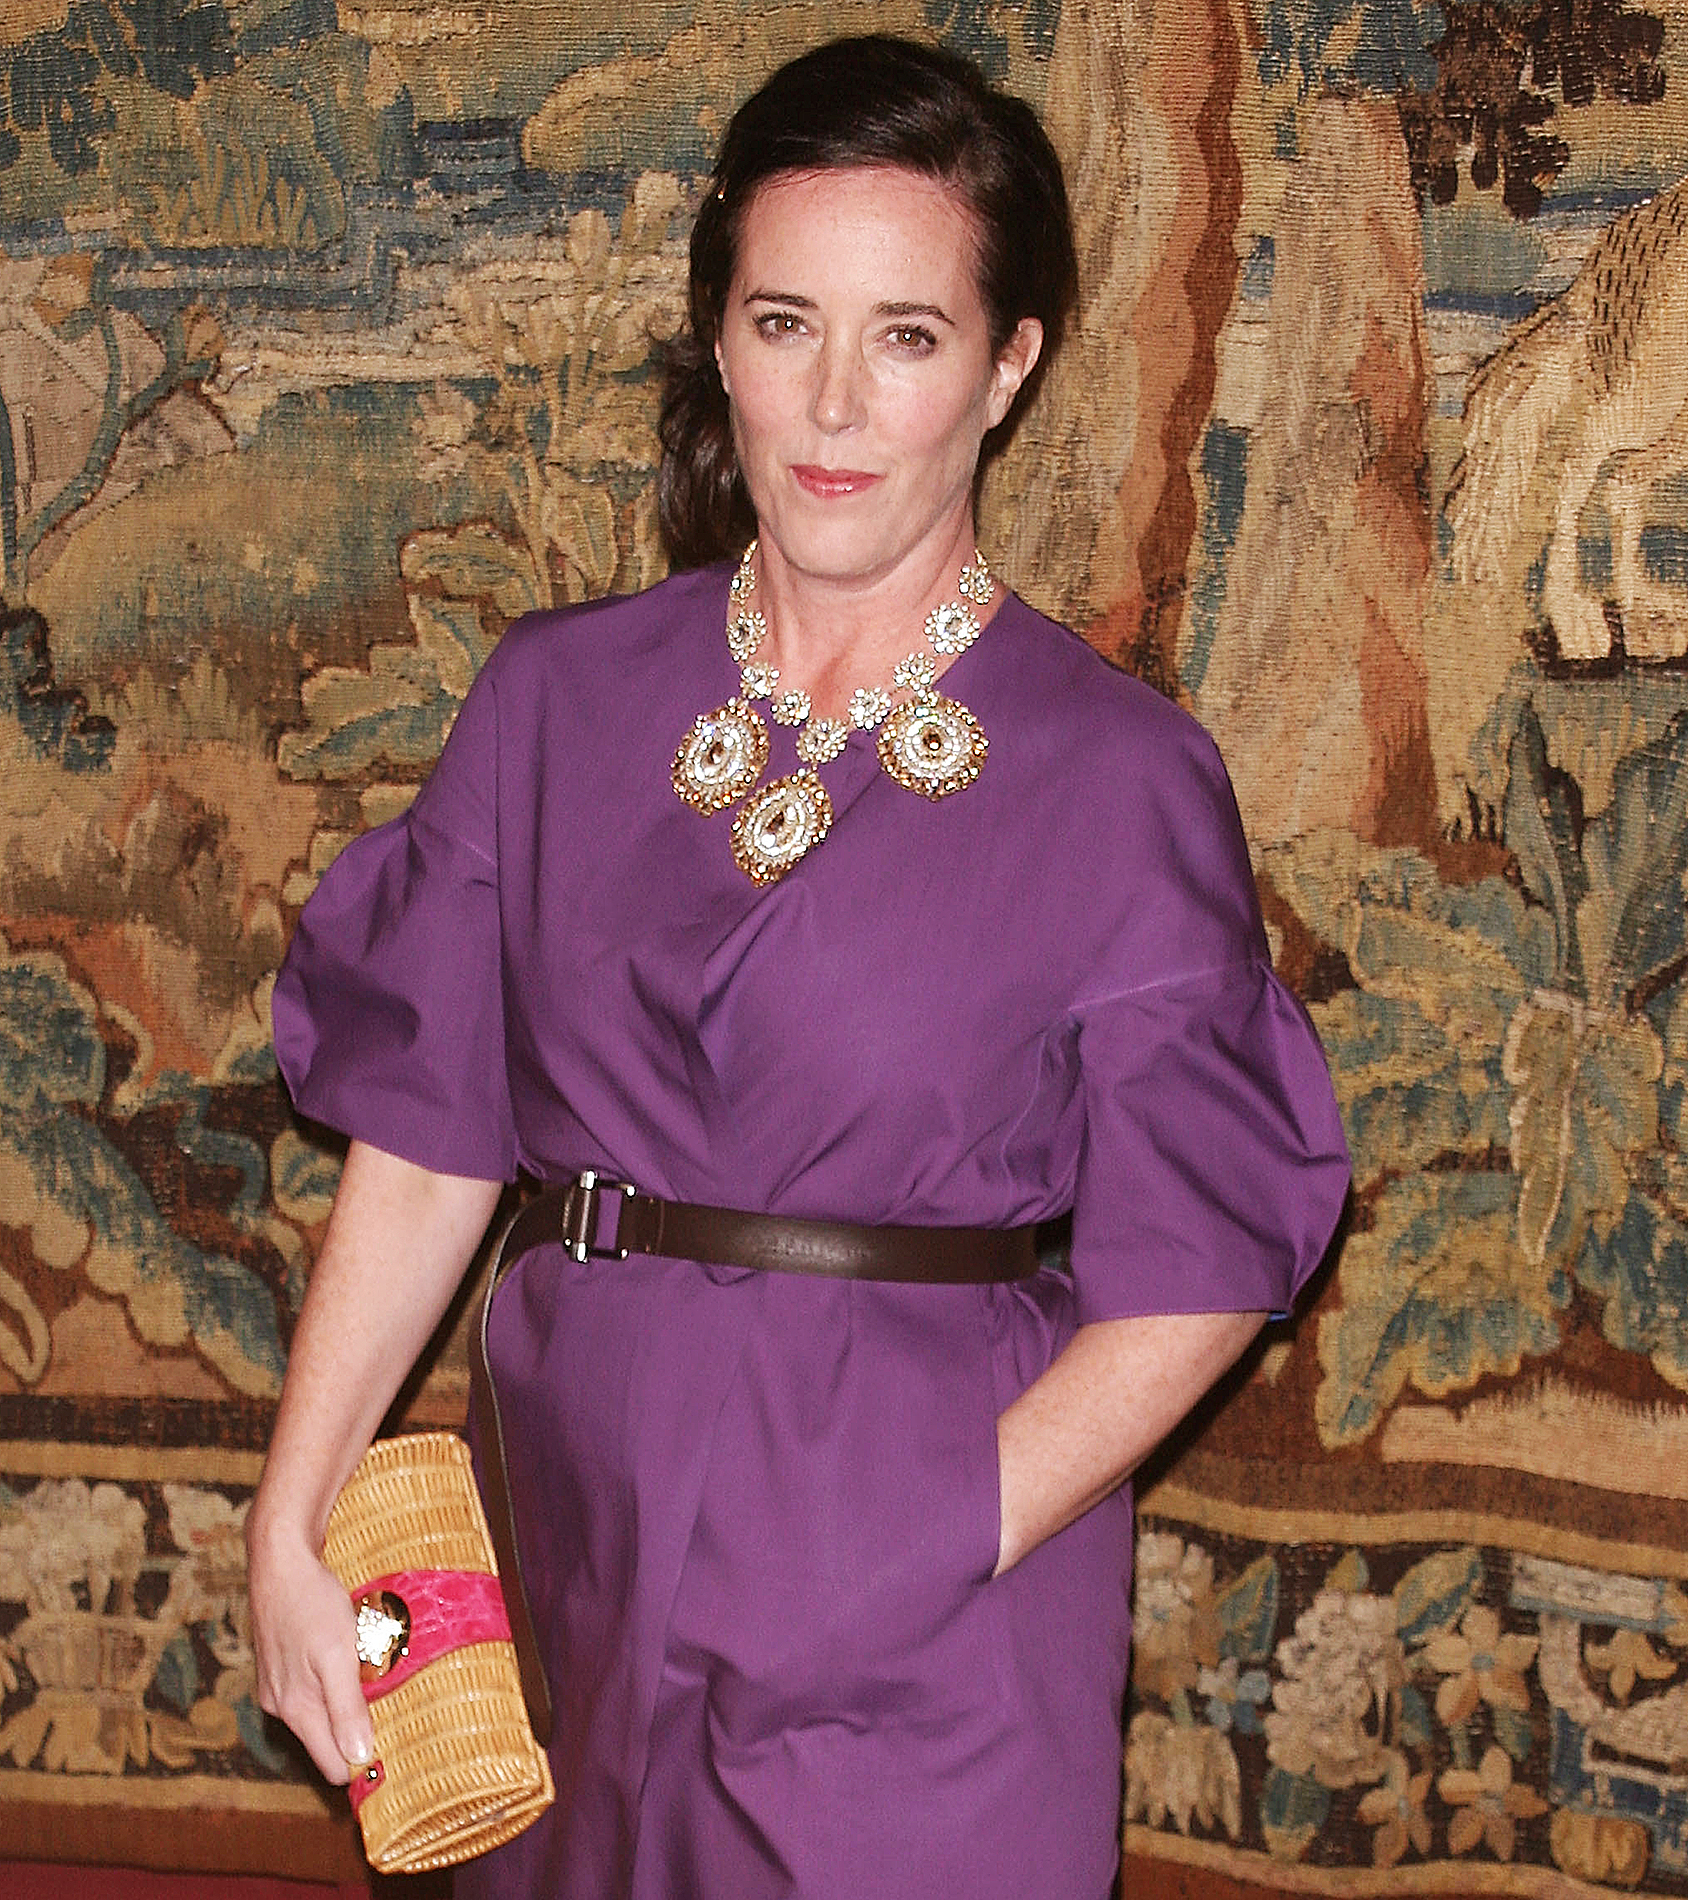 Kate Spade Cause of Death Suicide by Hanging